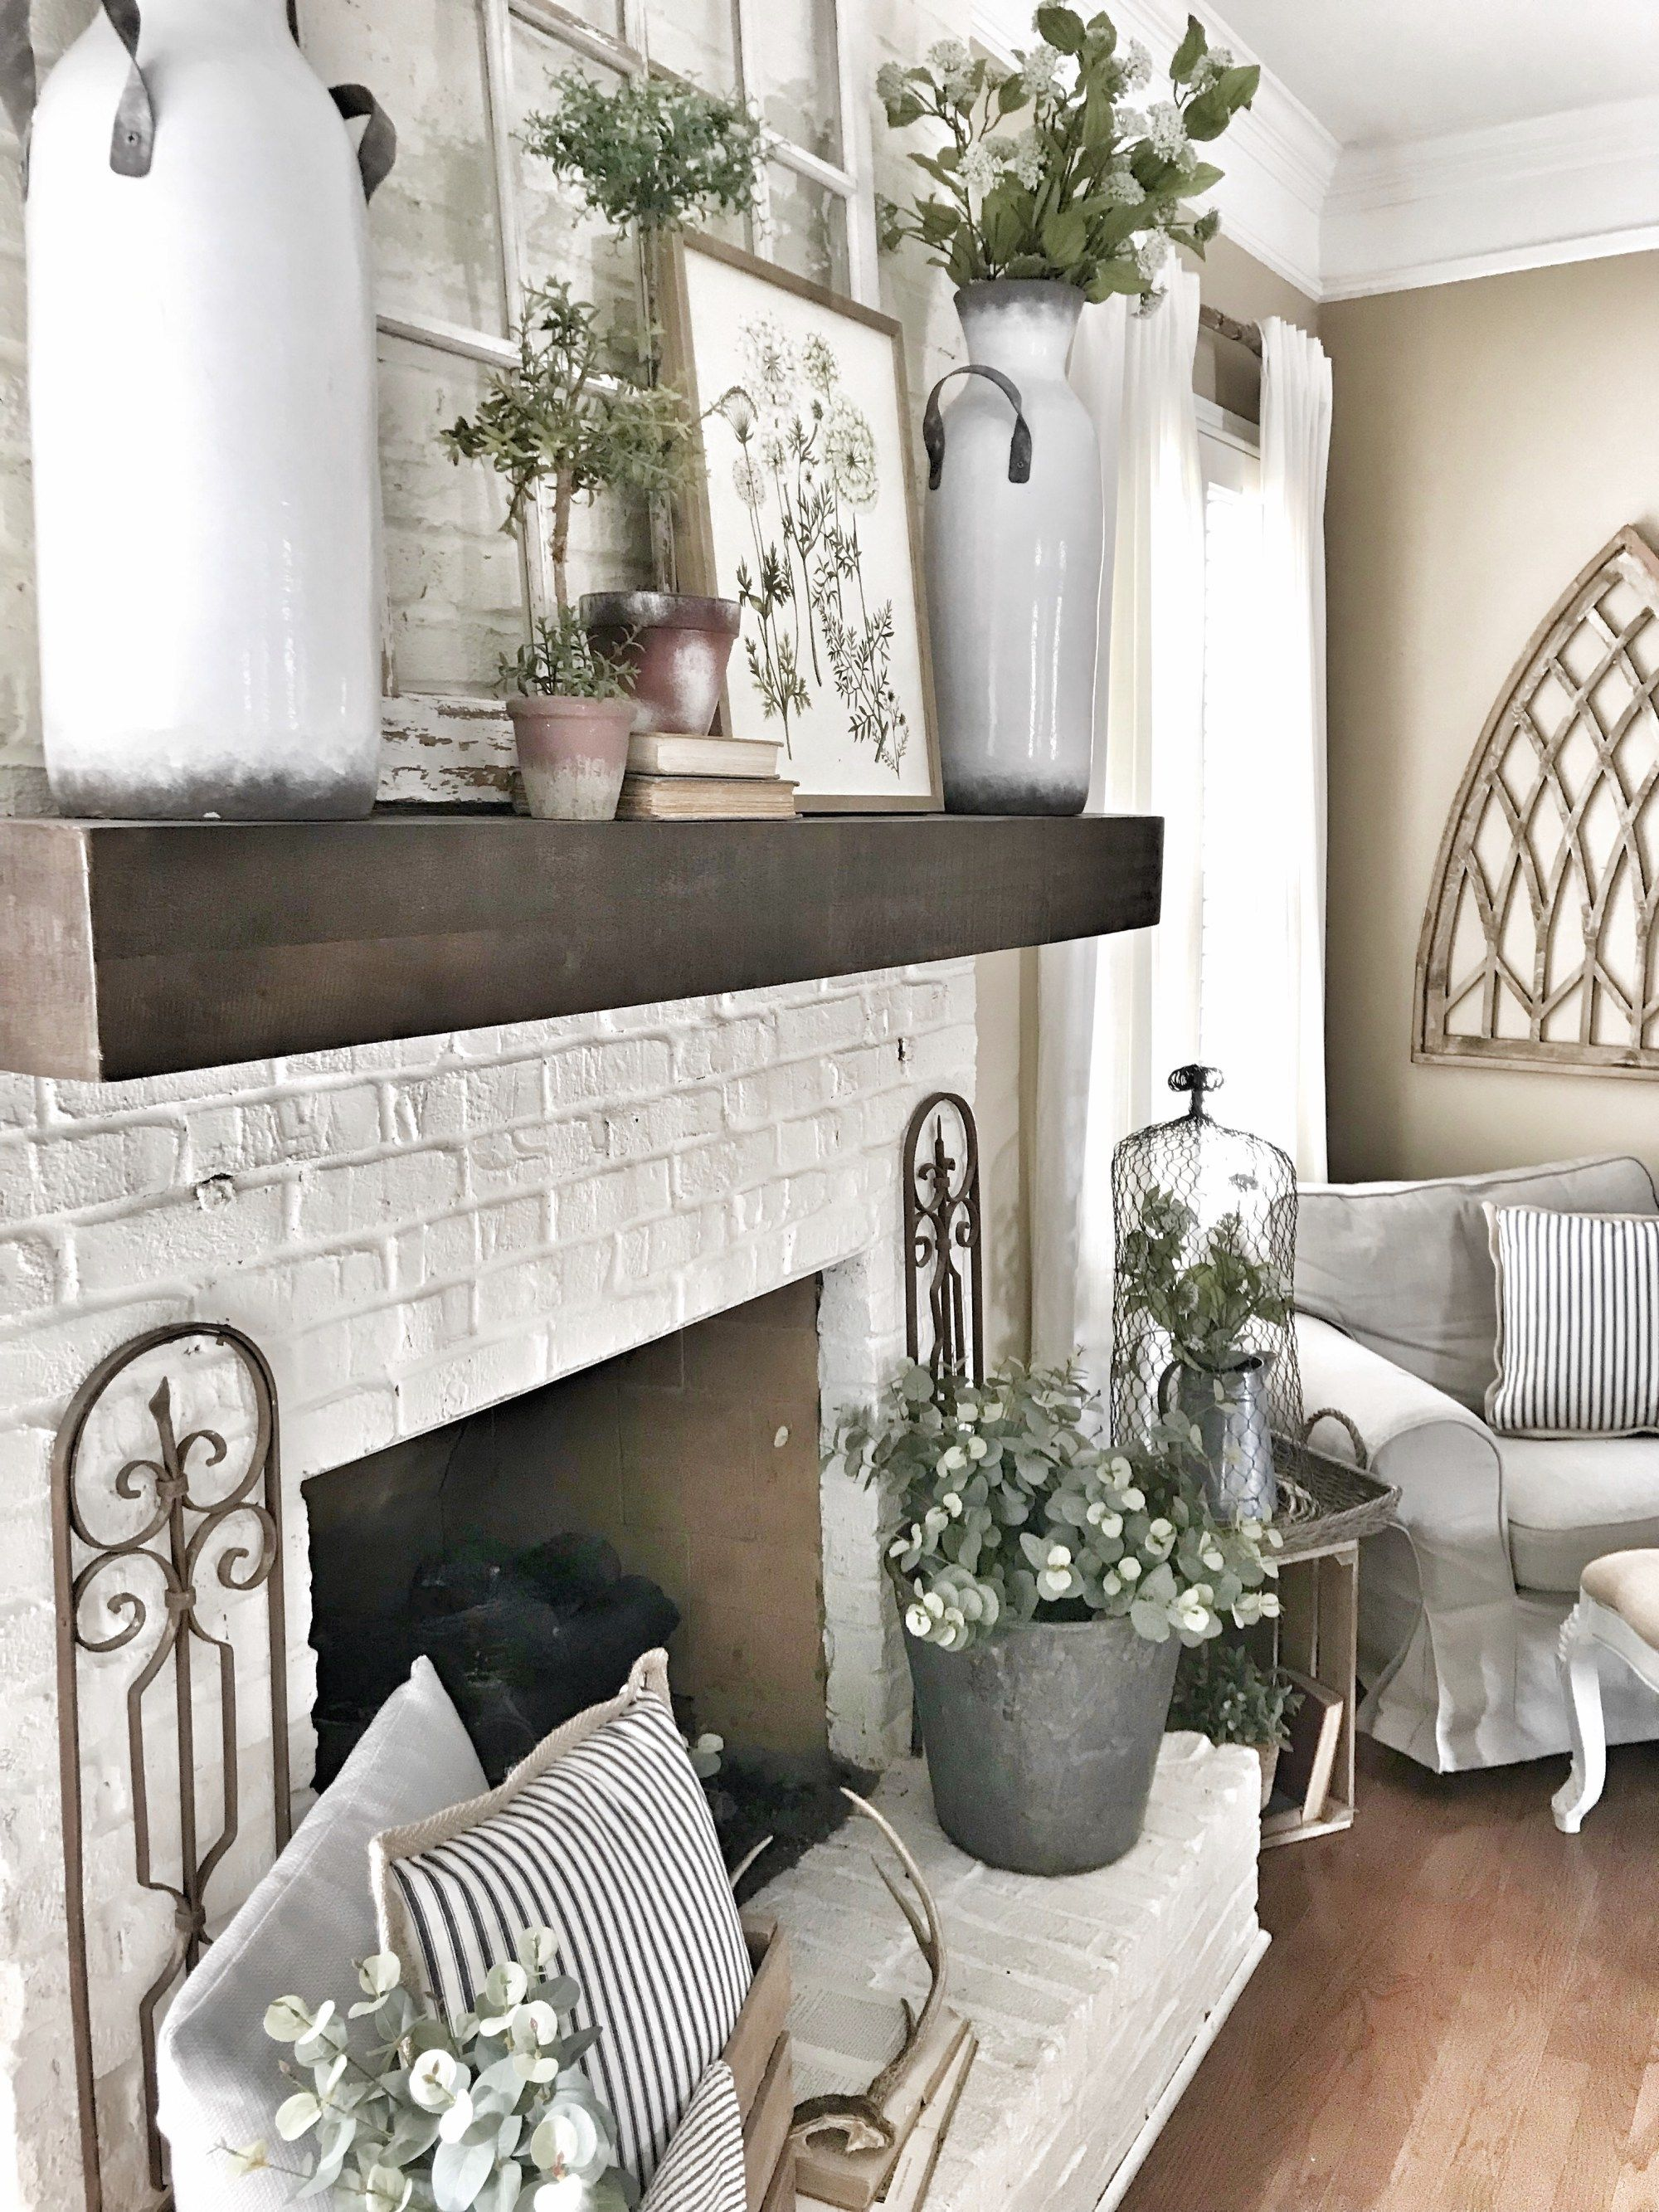 My Pottery Barn Shelf Mantel Hack Home Decorating Ideas